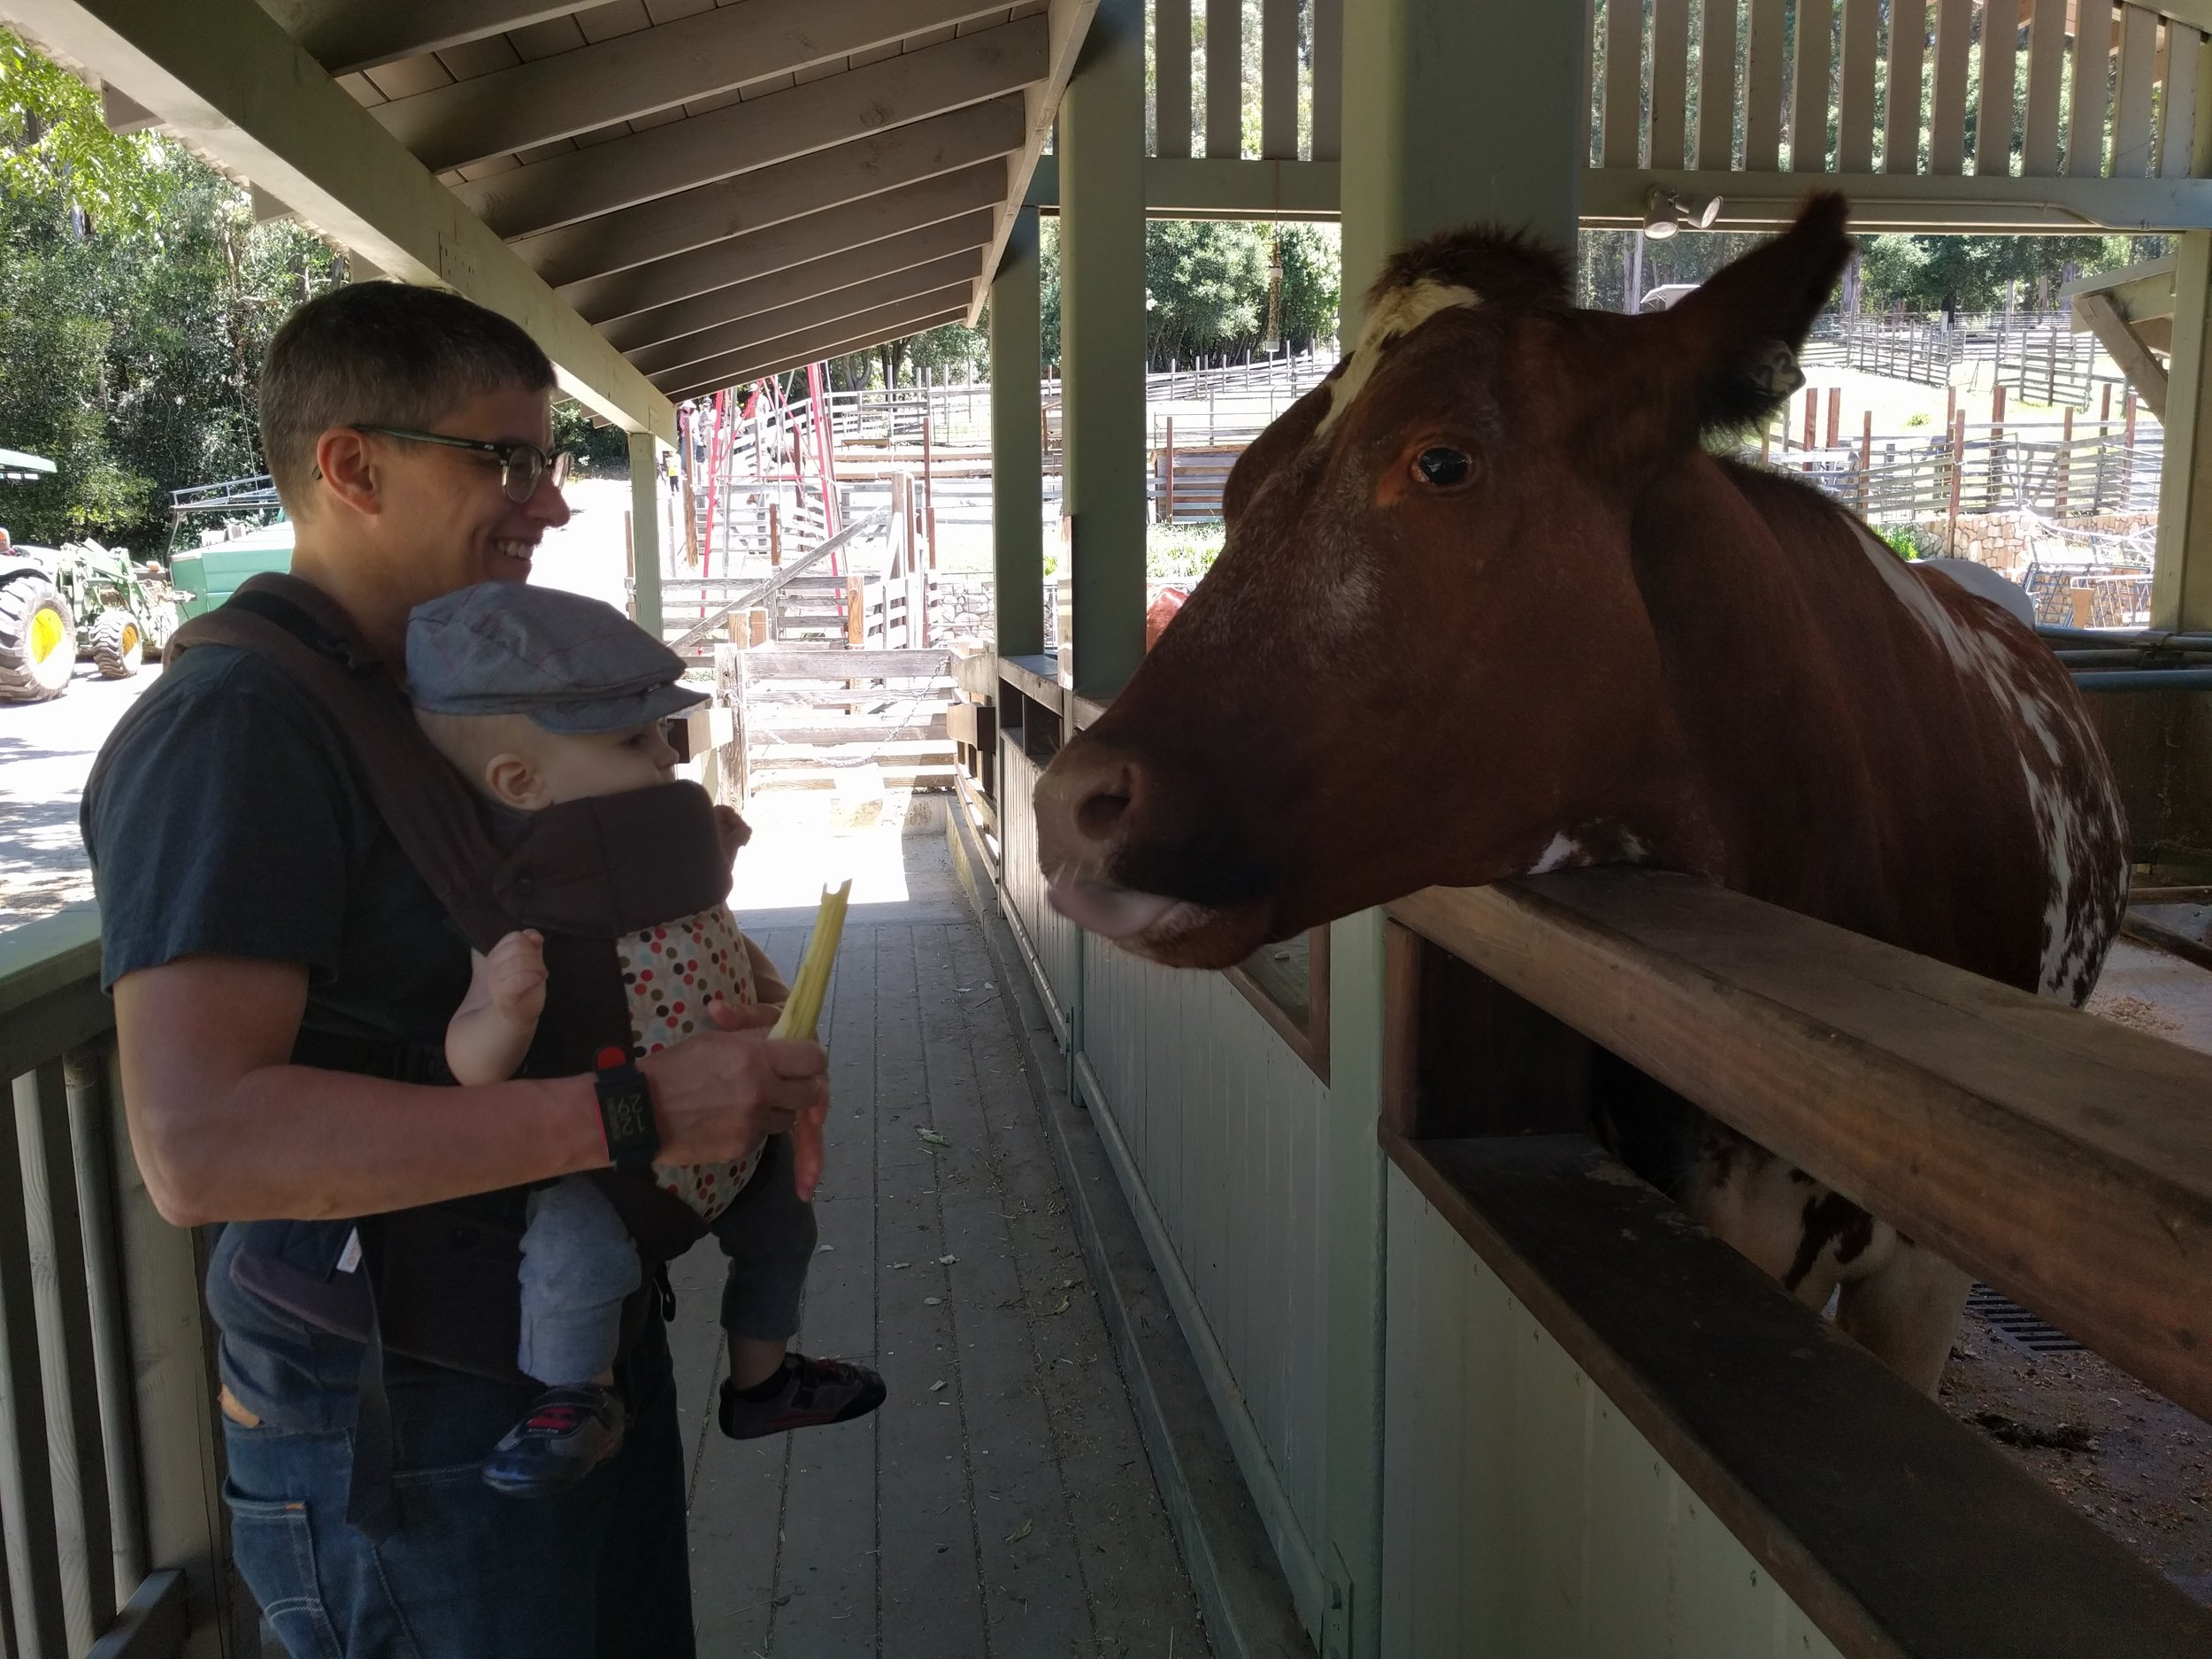 Chris & Dino feeding a cow at Little Farm last summer.